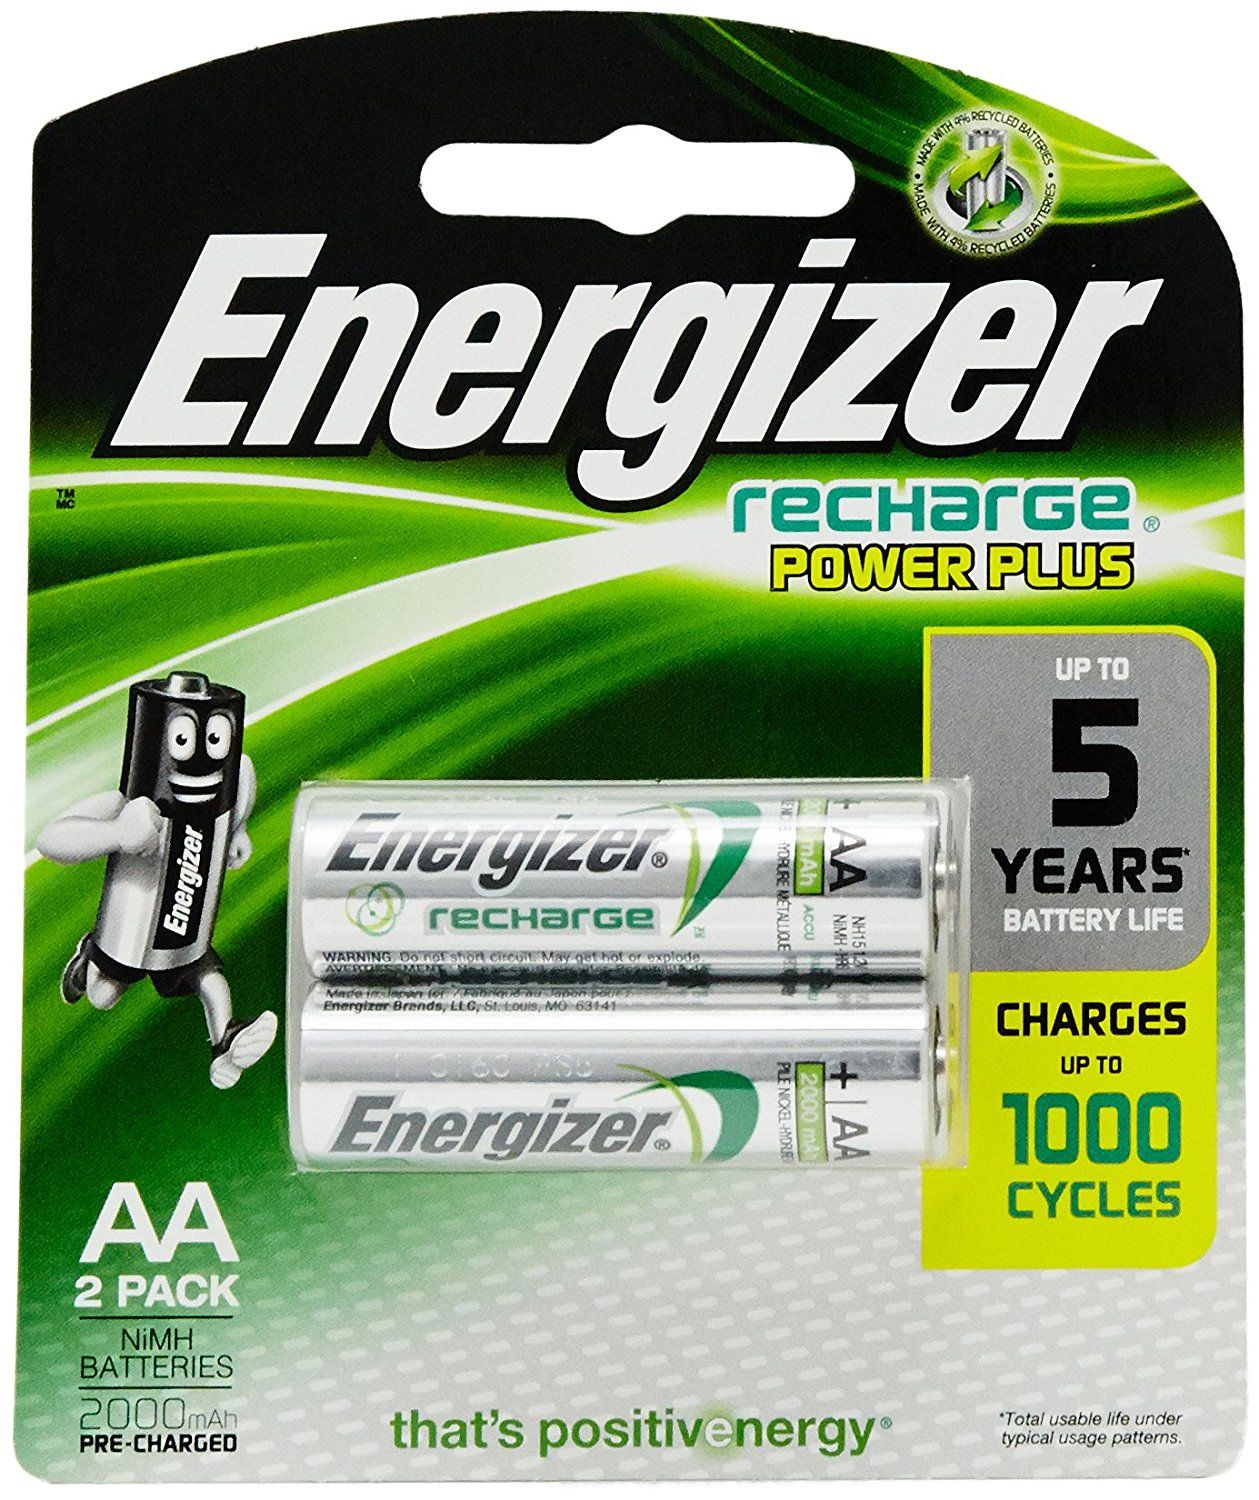 Energizer Recharge Power Plus - AA Rechargeable Batteries 1.2V AA HR6 ( 2 Pack )